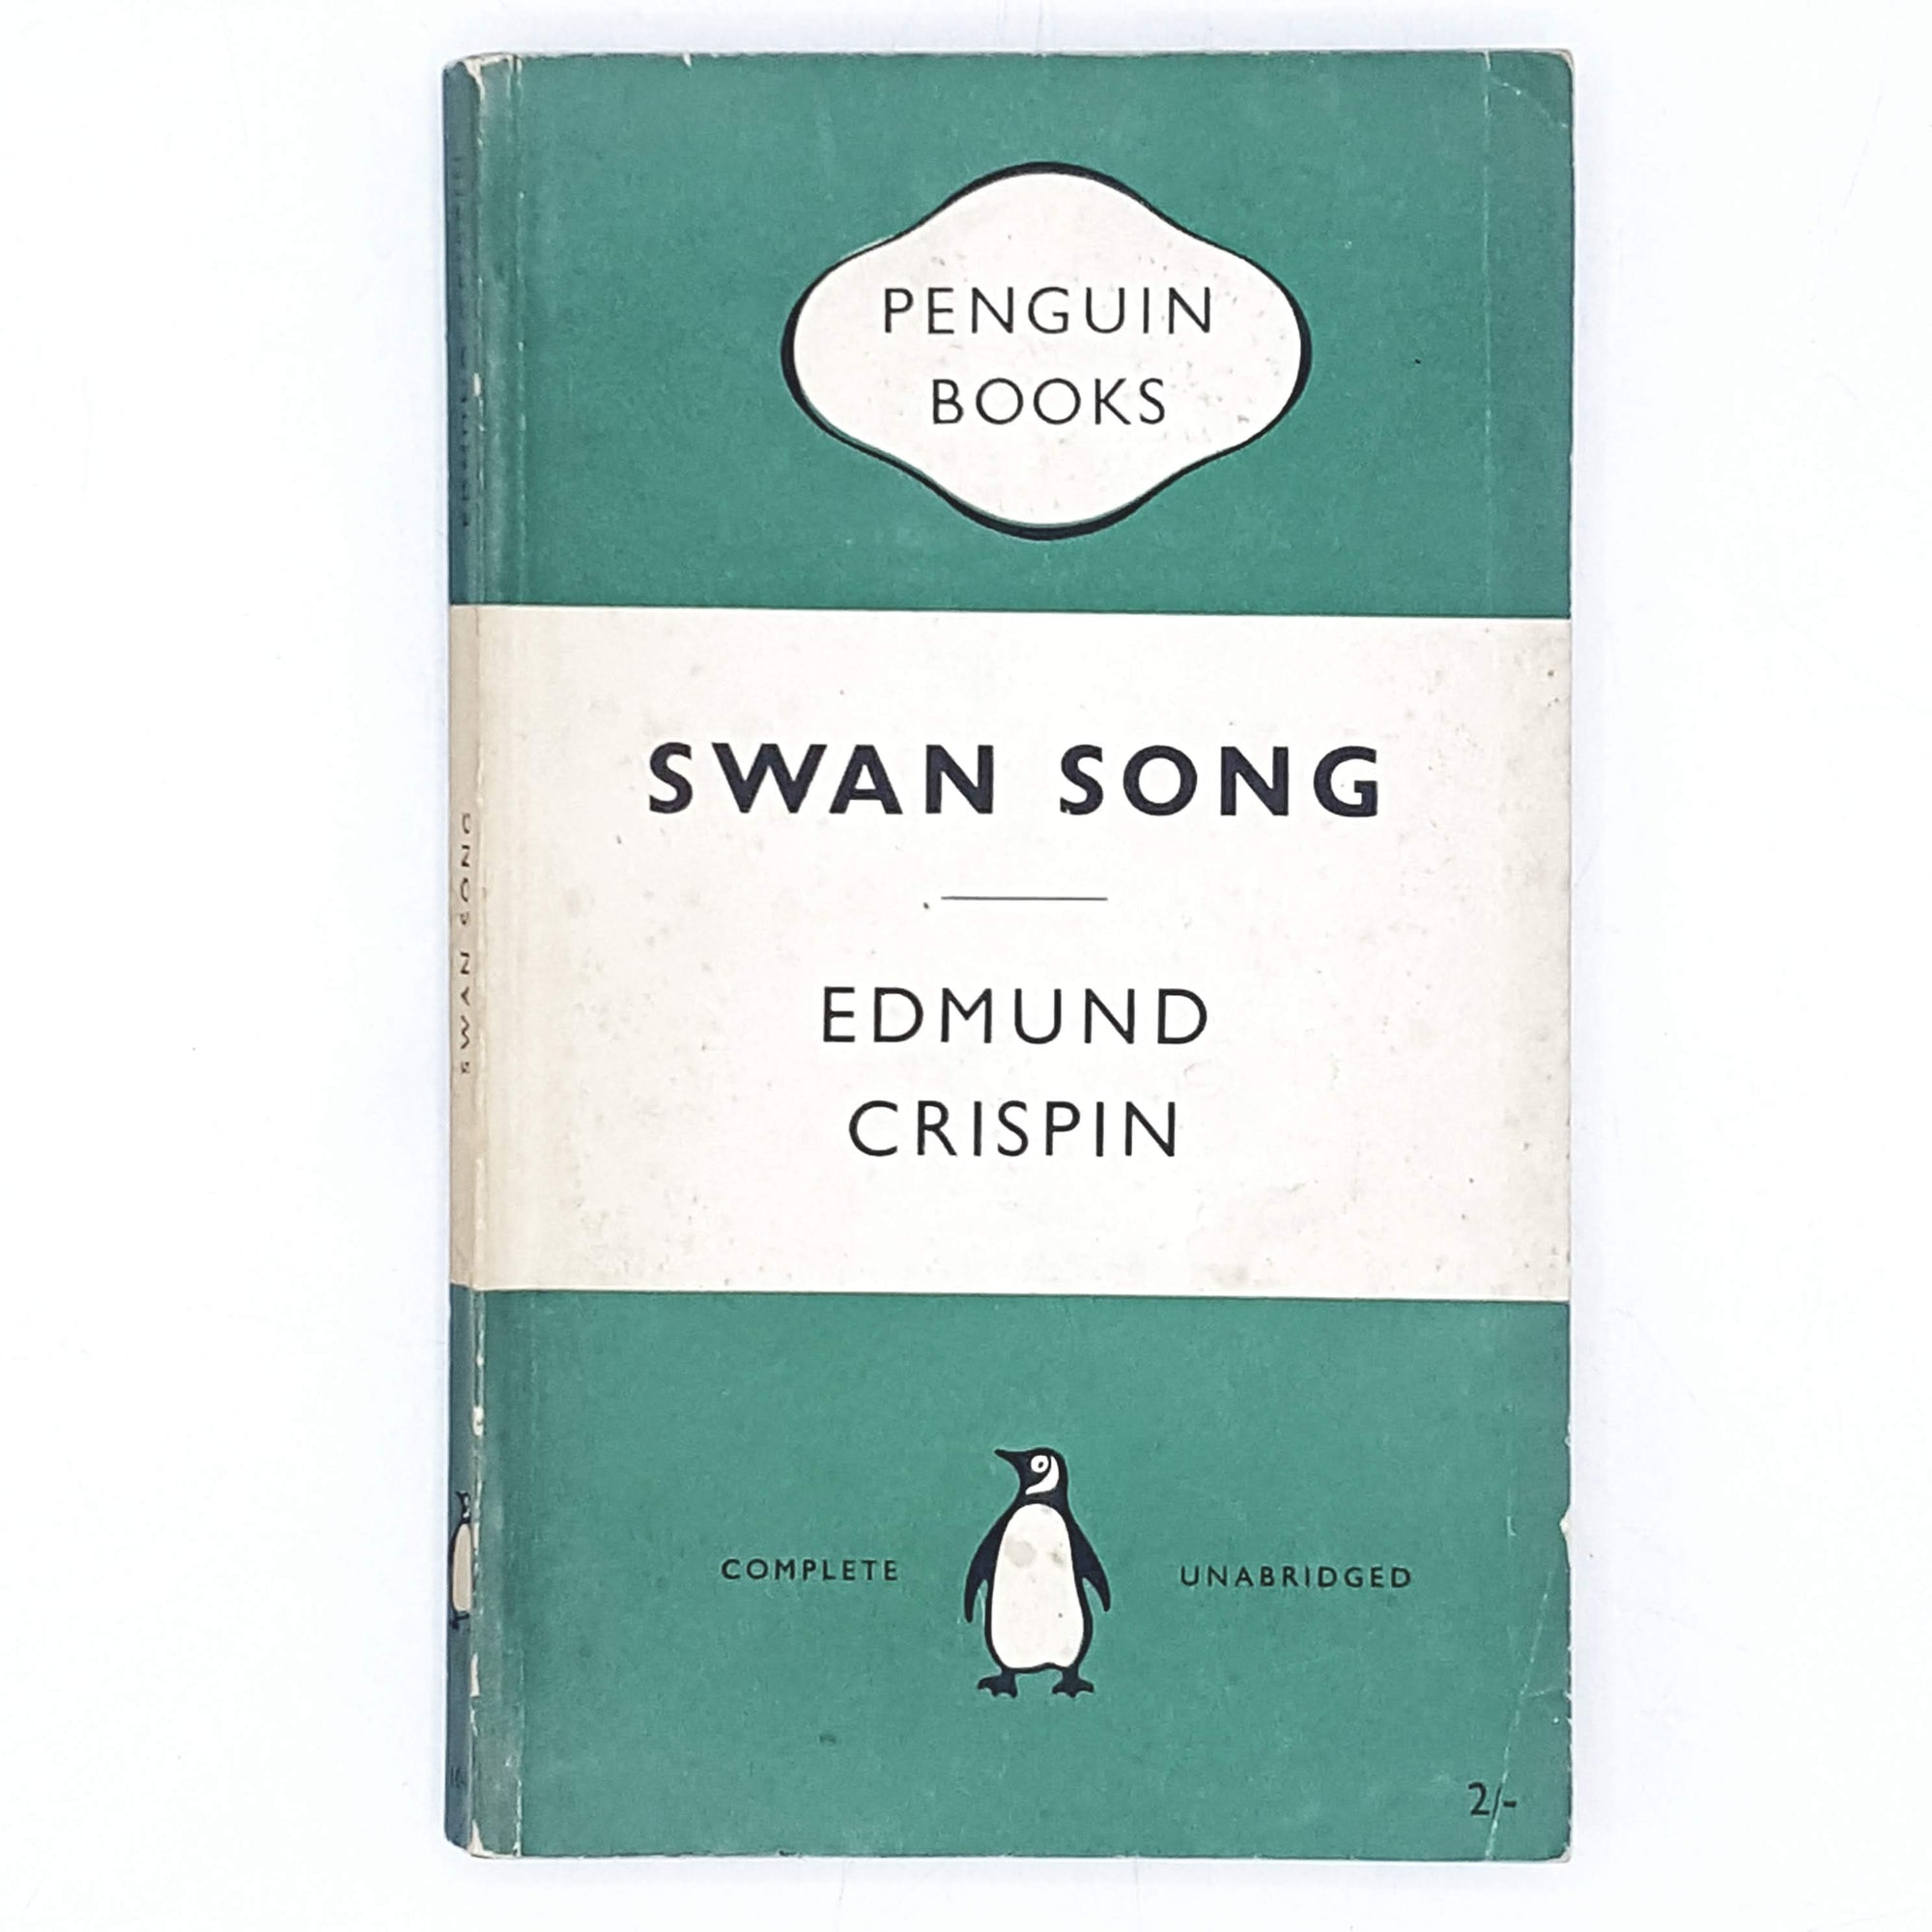 First Edition Penguin Swan Song by Edmund Crispin 1955